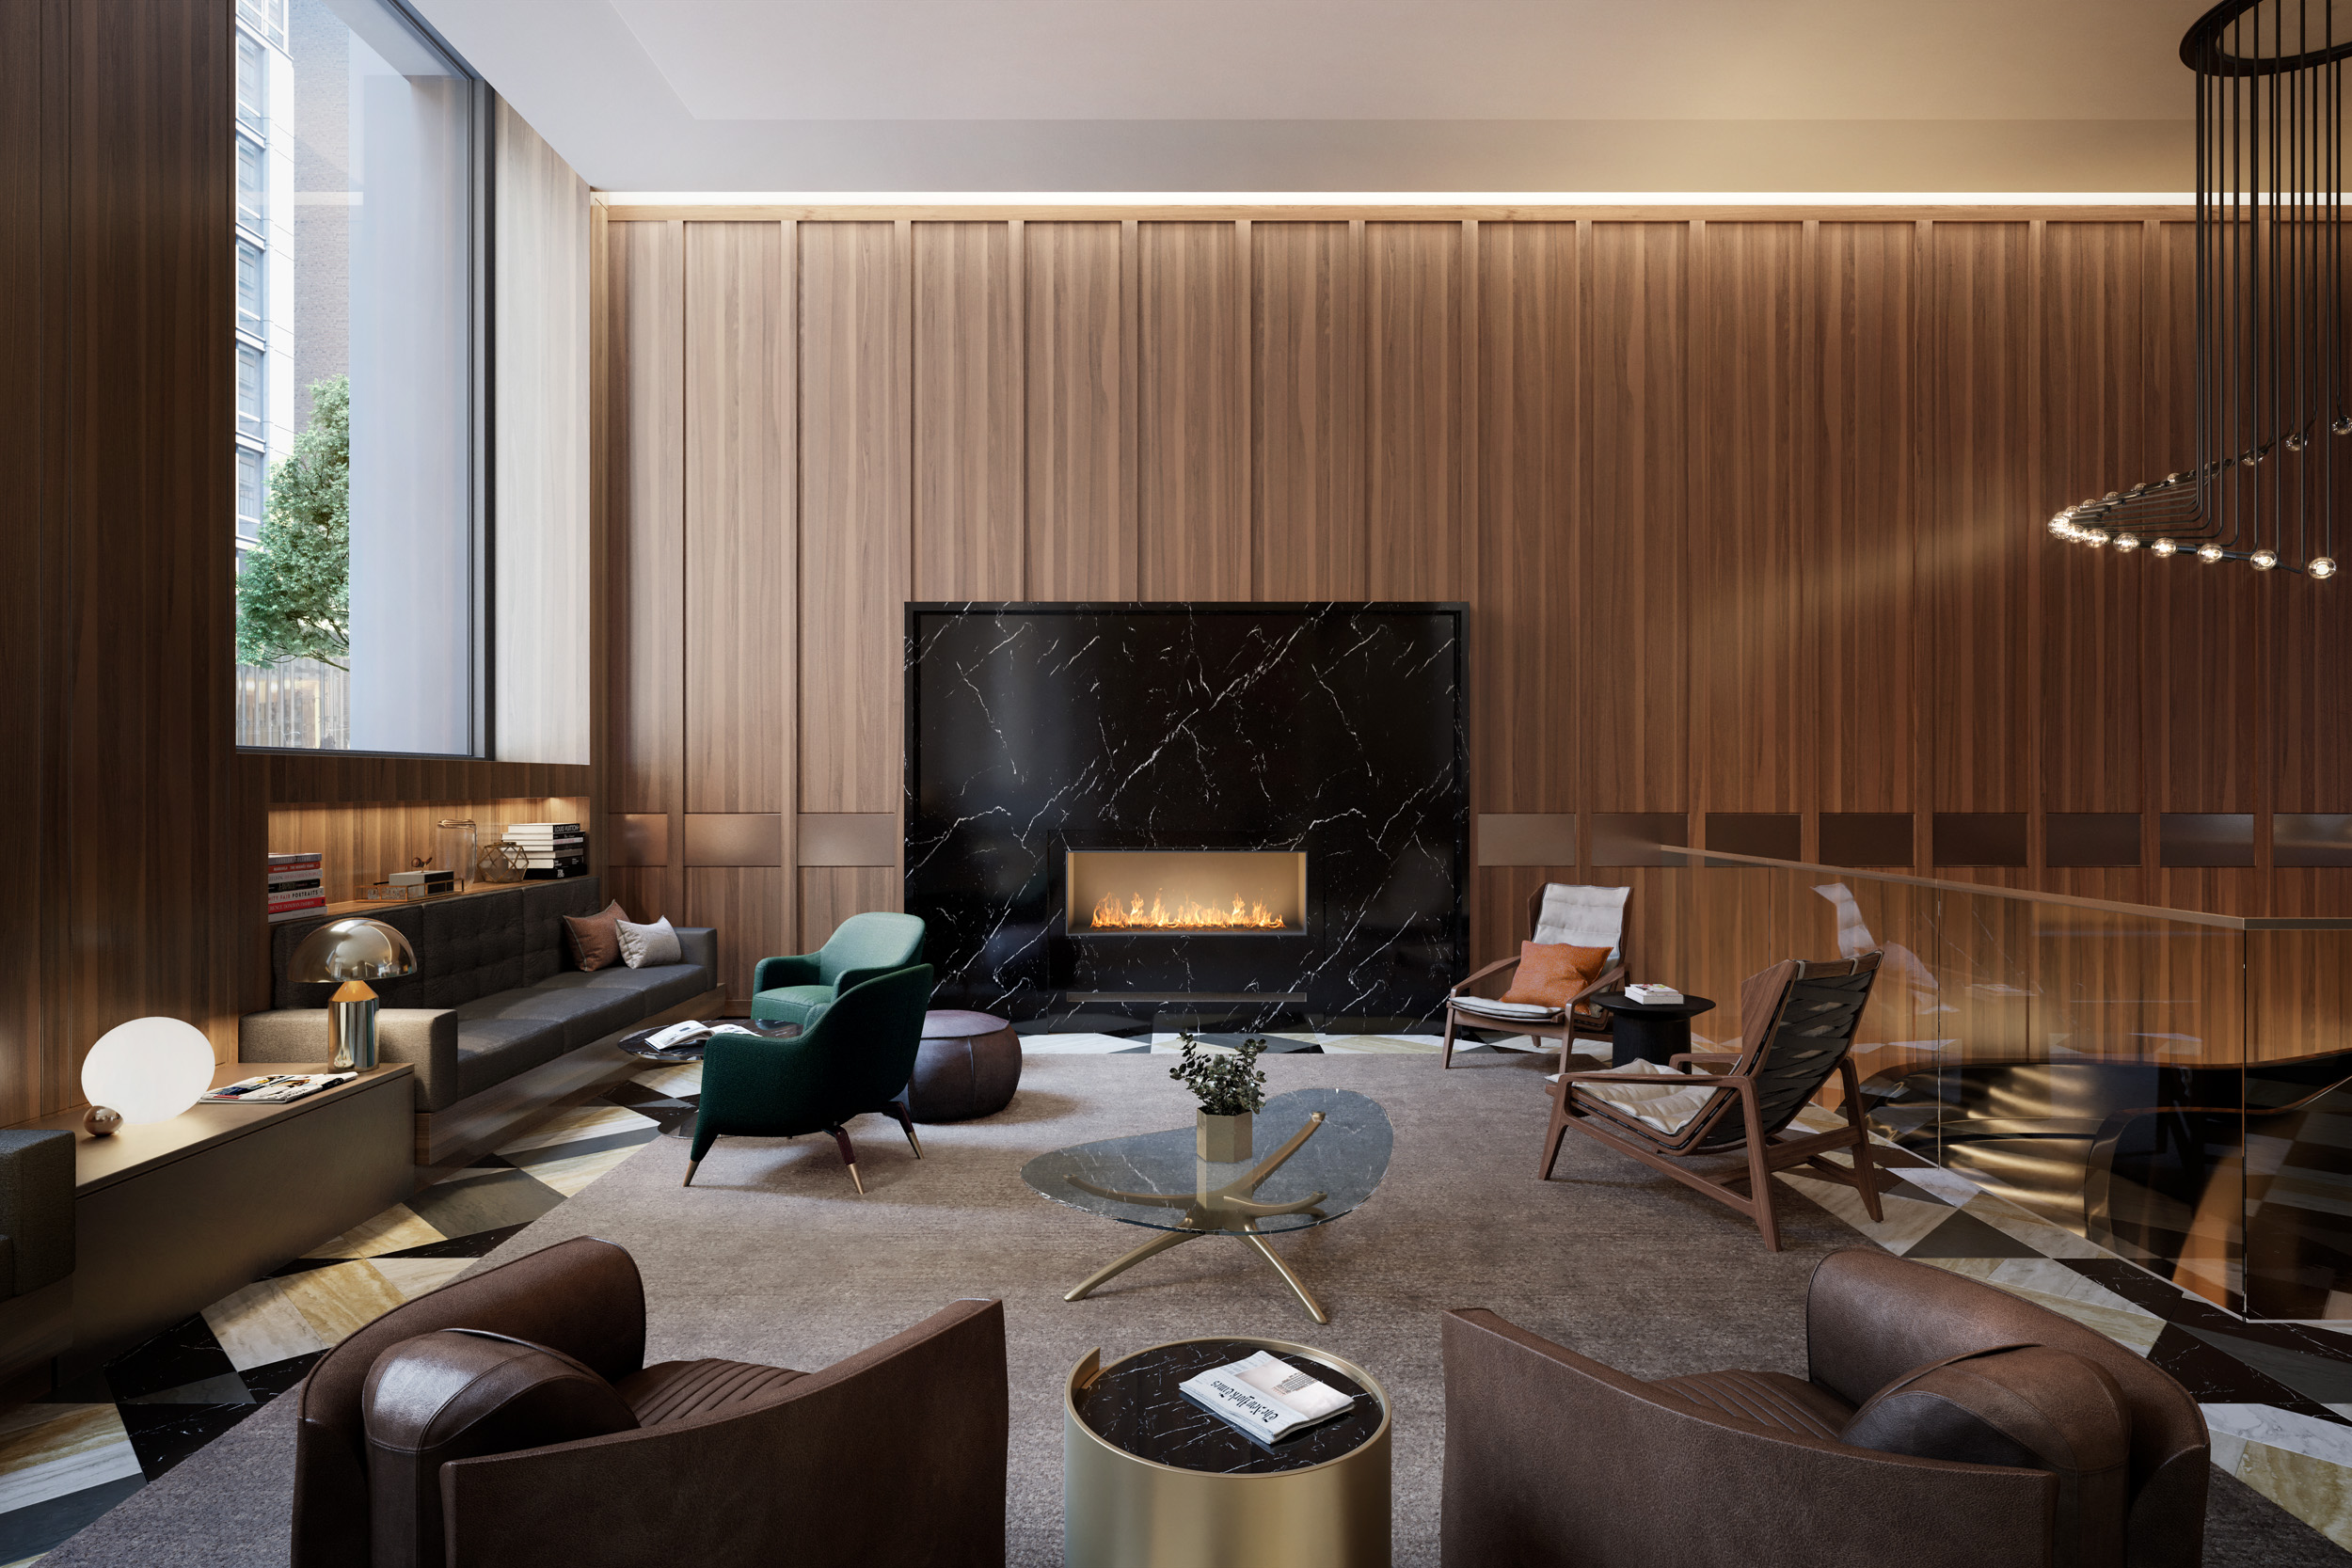 recent_spaces_rose_hill_nyc_10.jpg